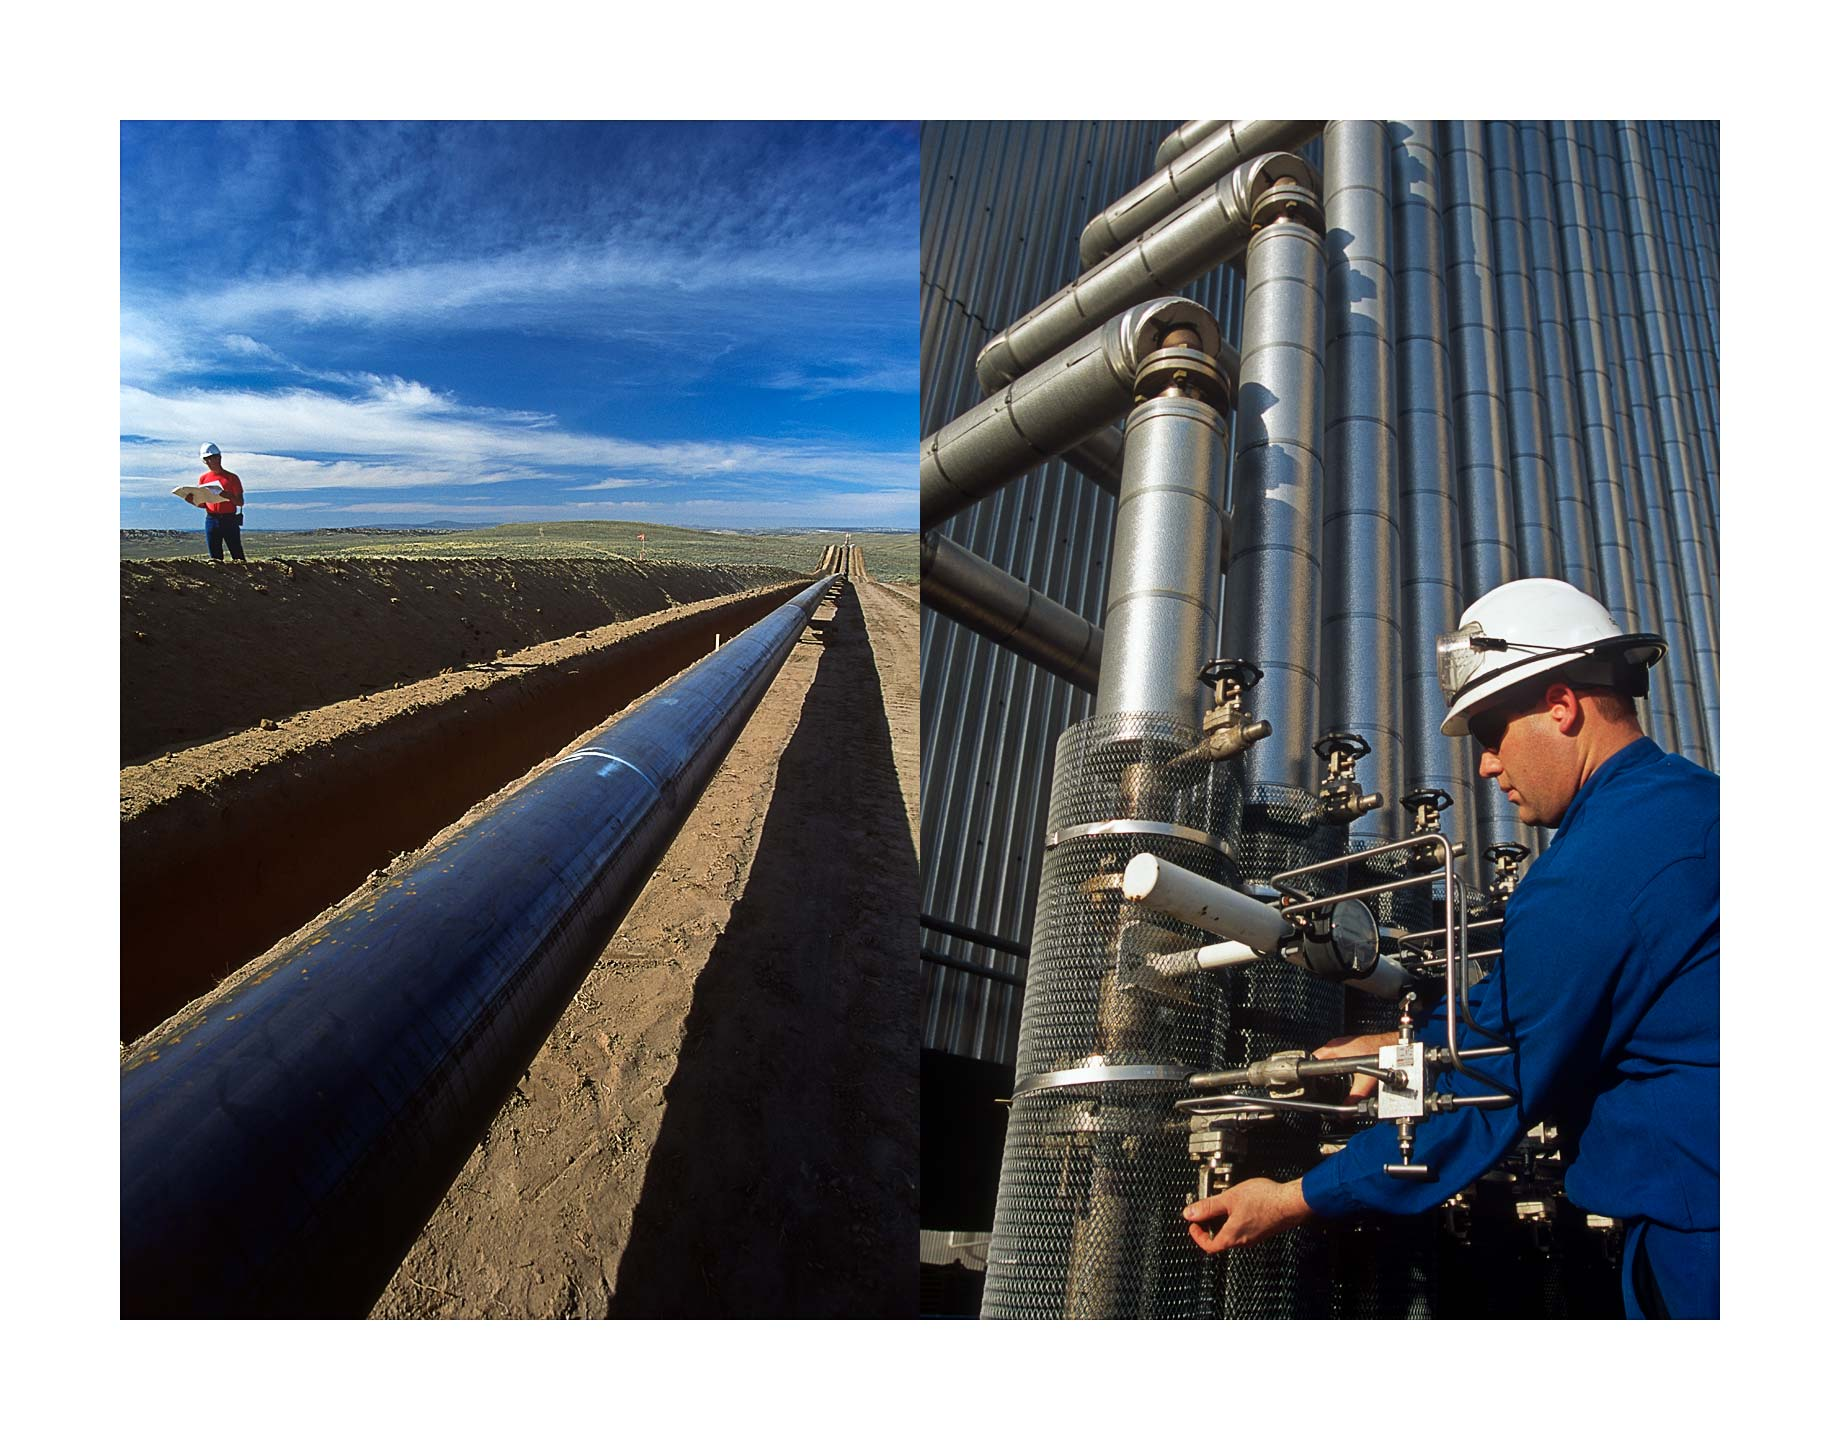 PIPELINE CONSTRUCTION & REFINERY OPERATOR